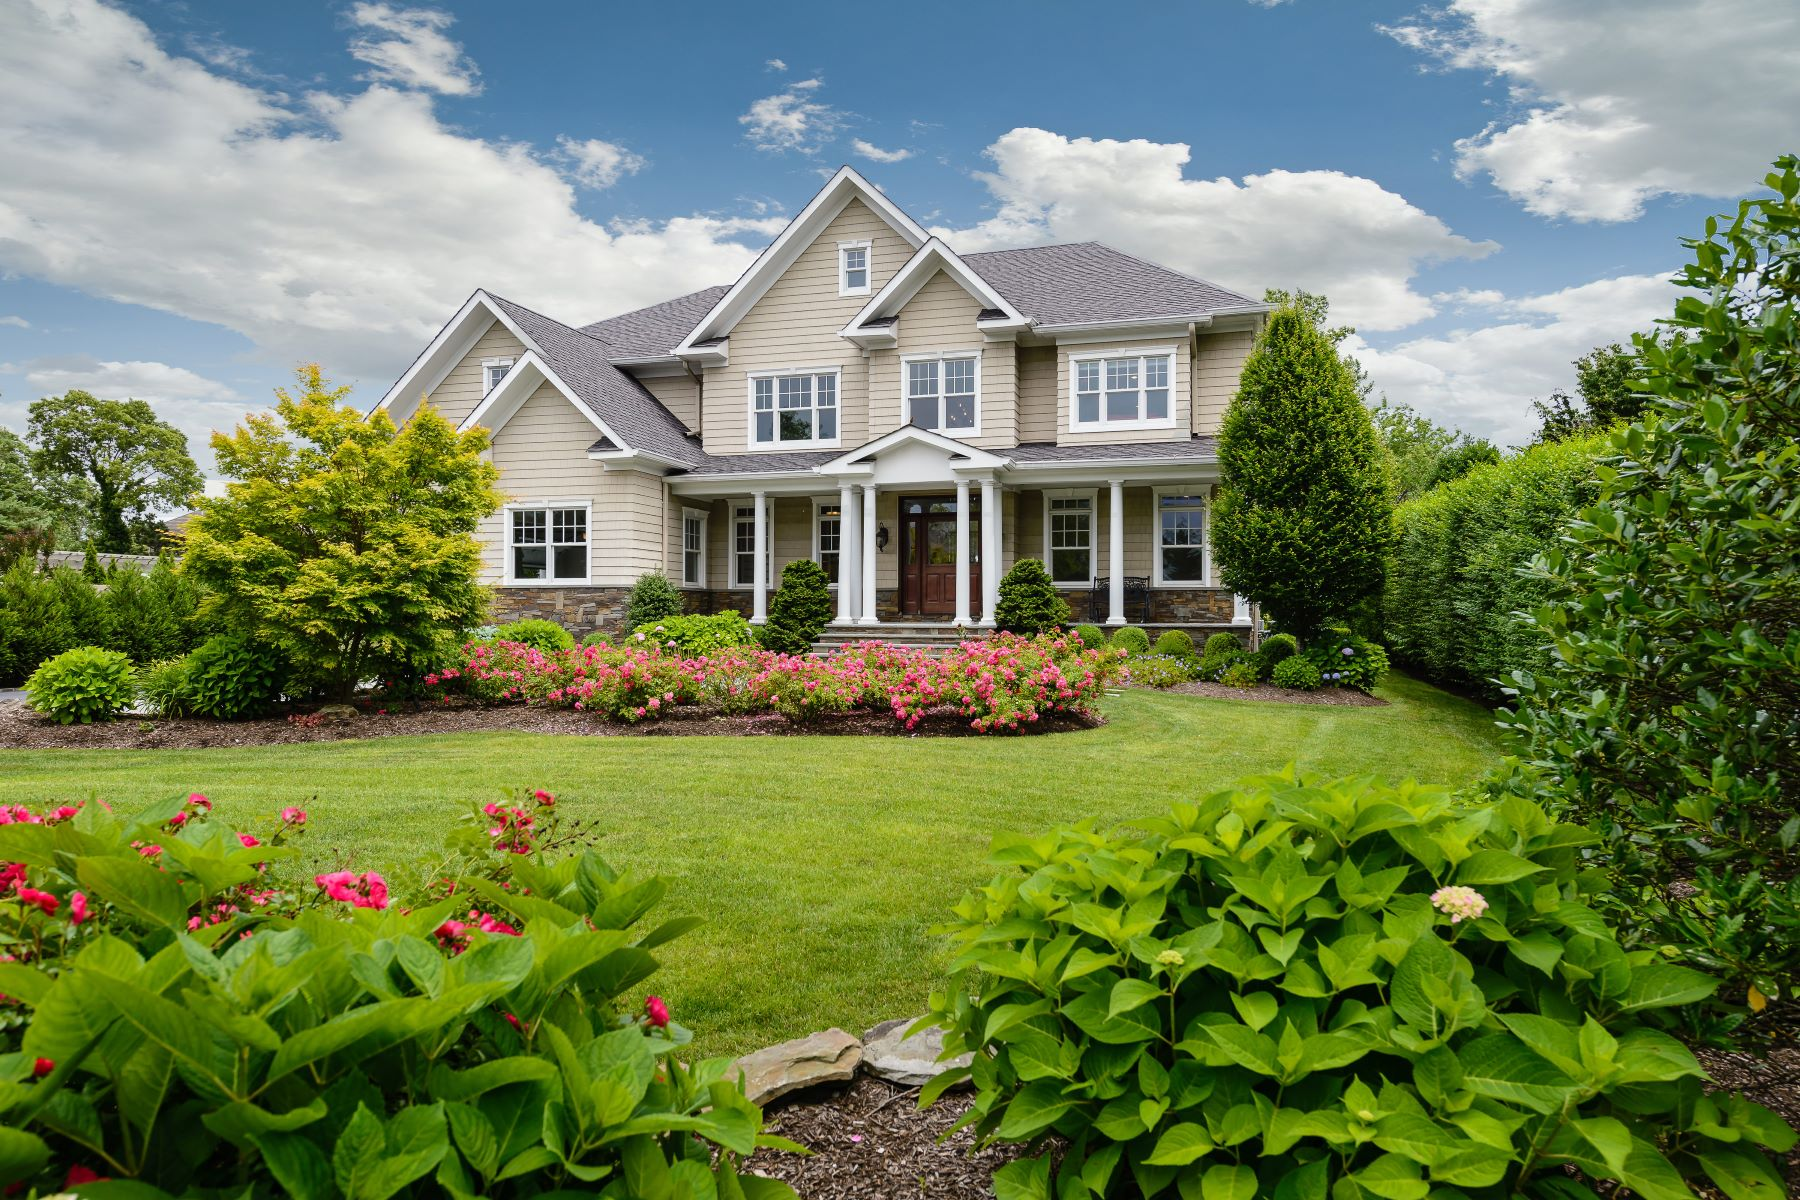 Single Family Homes for Active at West Islip 147 Eaton Ln West Islip, New York 11795 United States